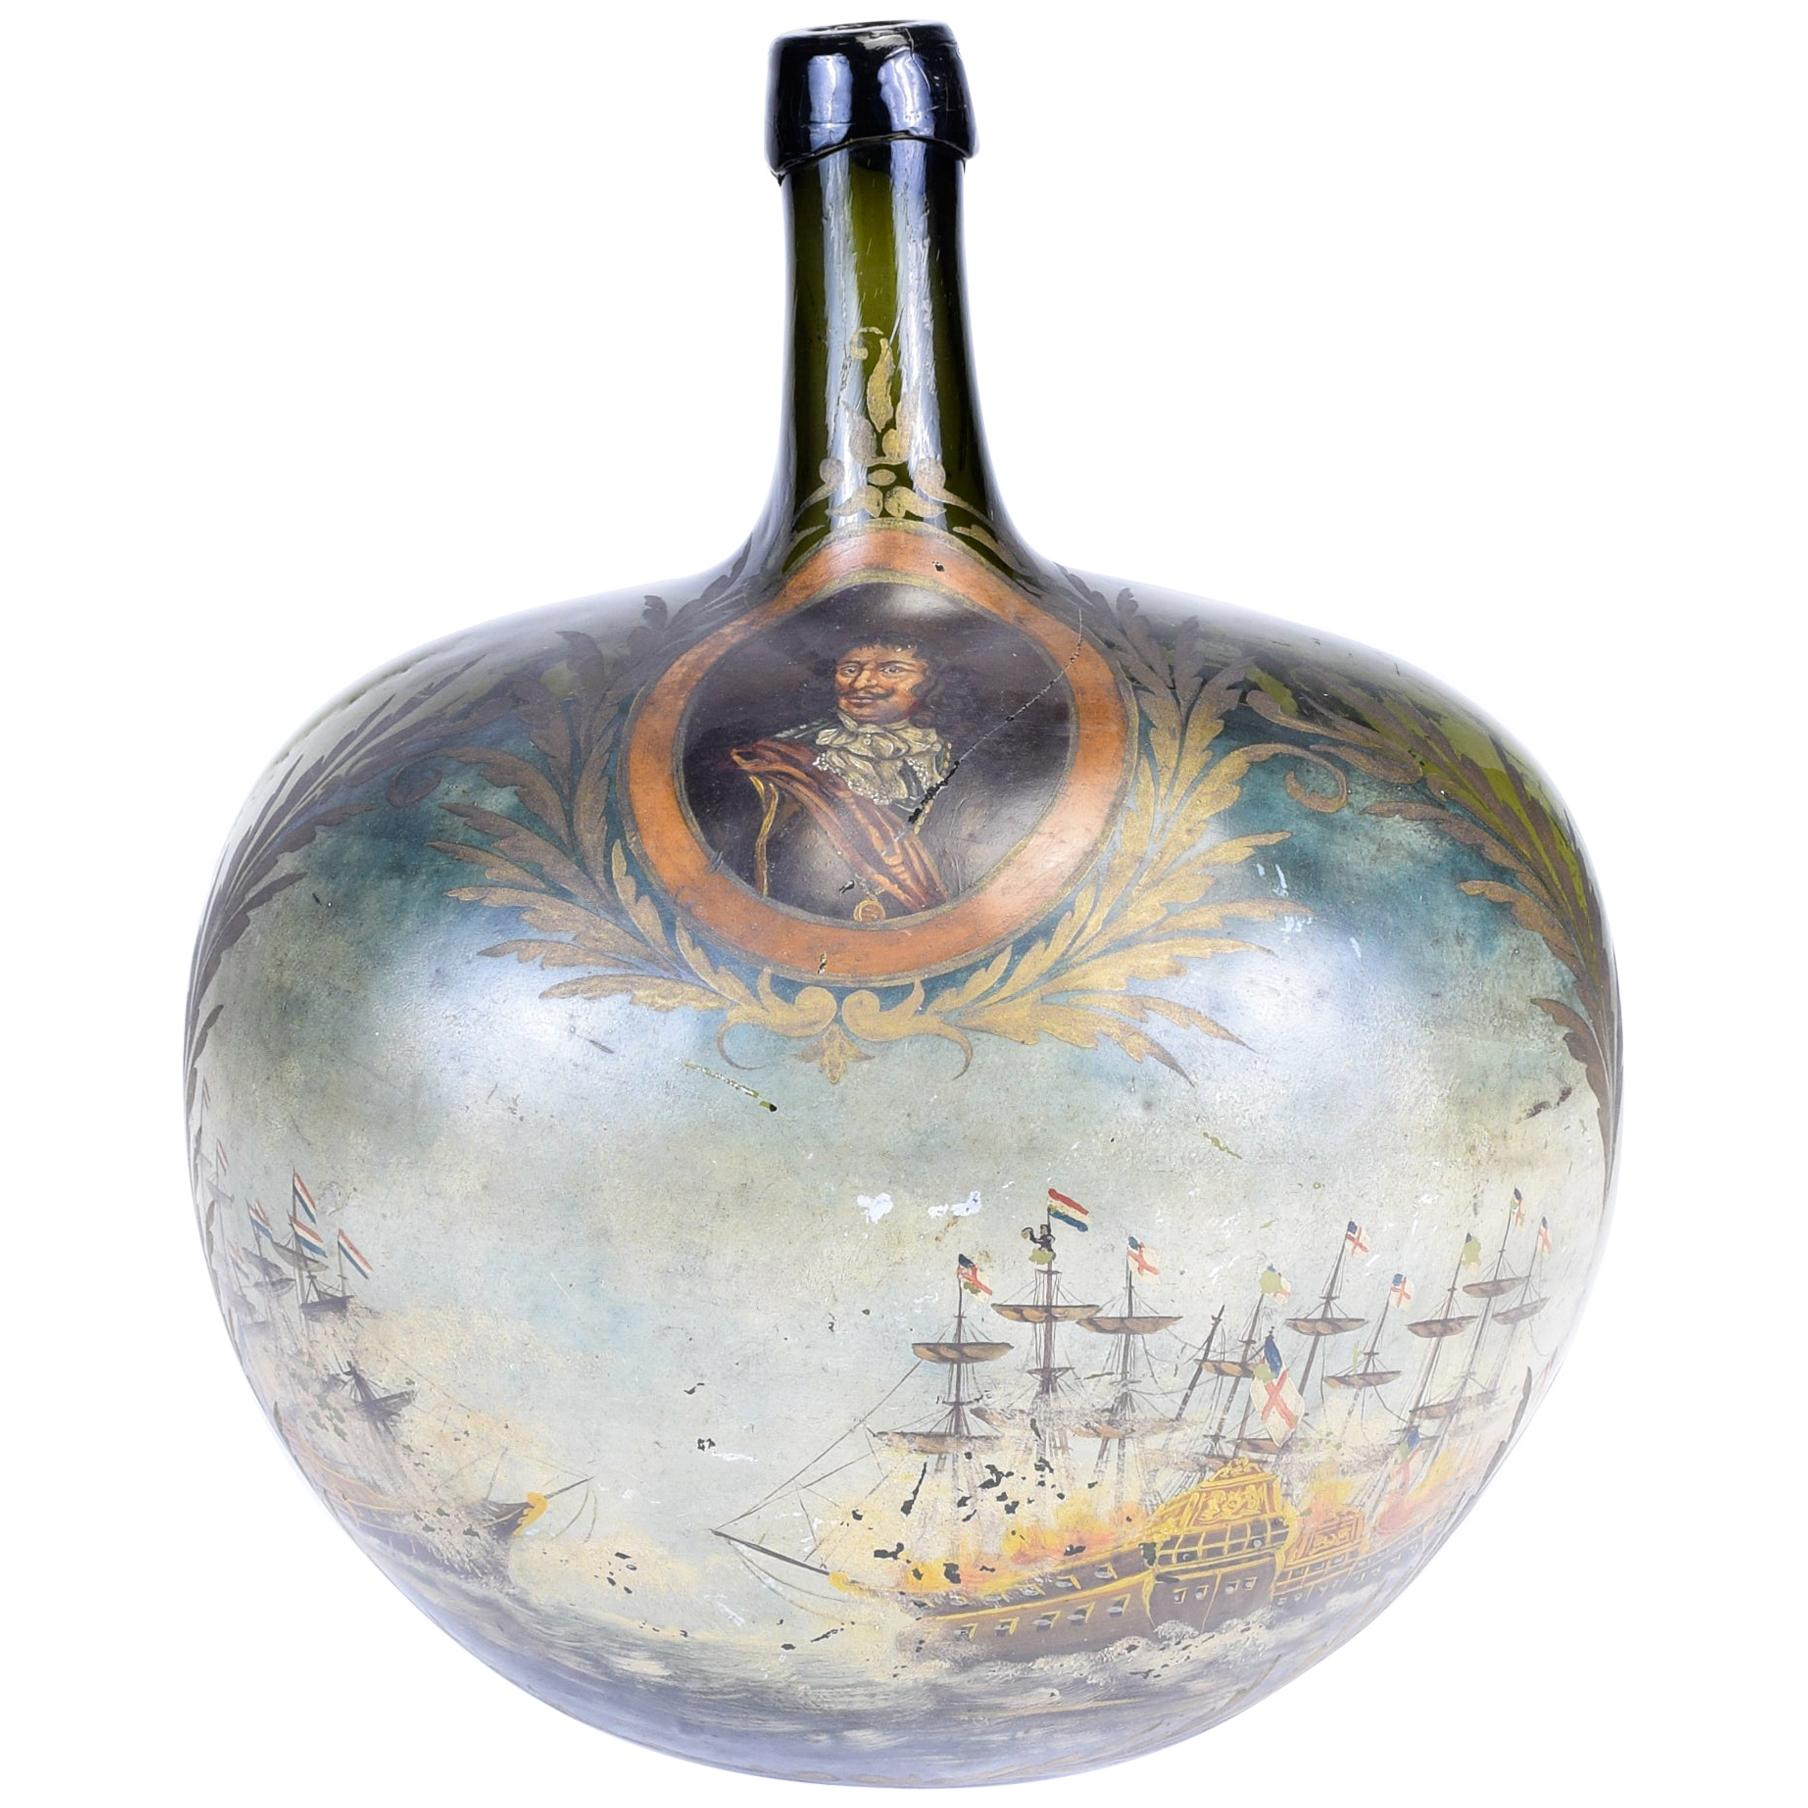 Large Museum Quality 1700s Dutch Demijohn Bottle